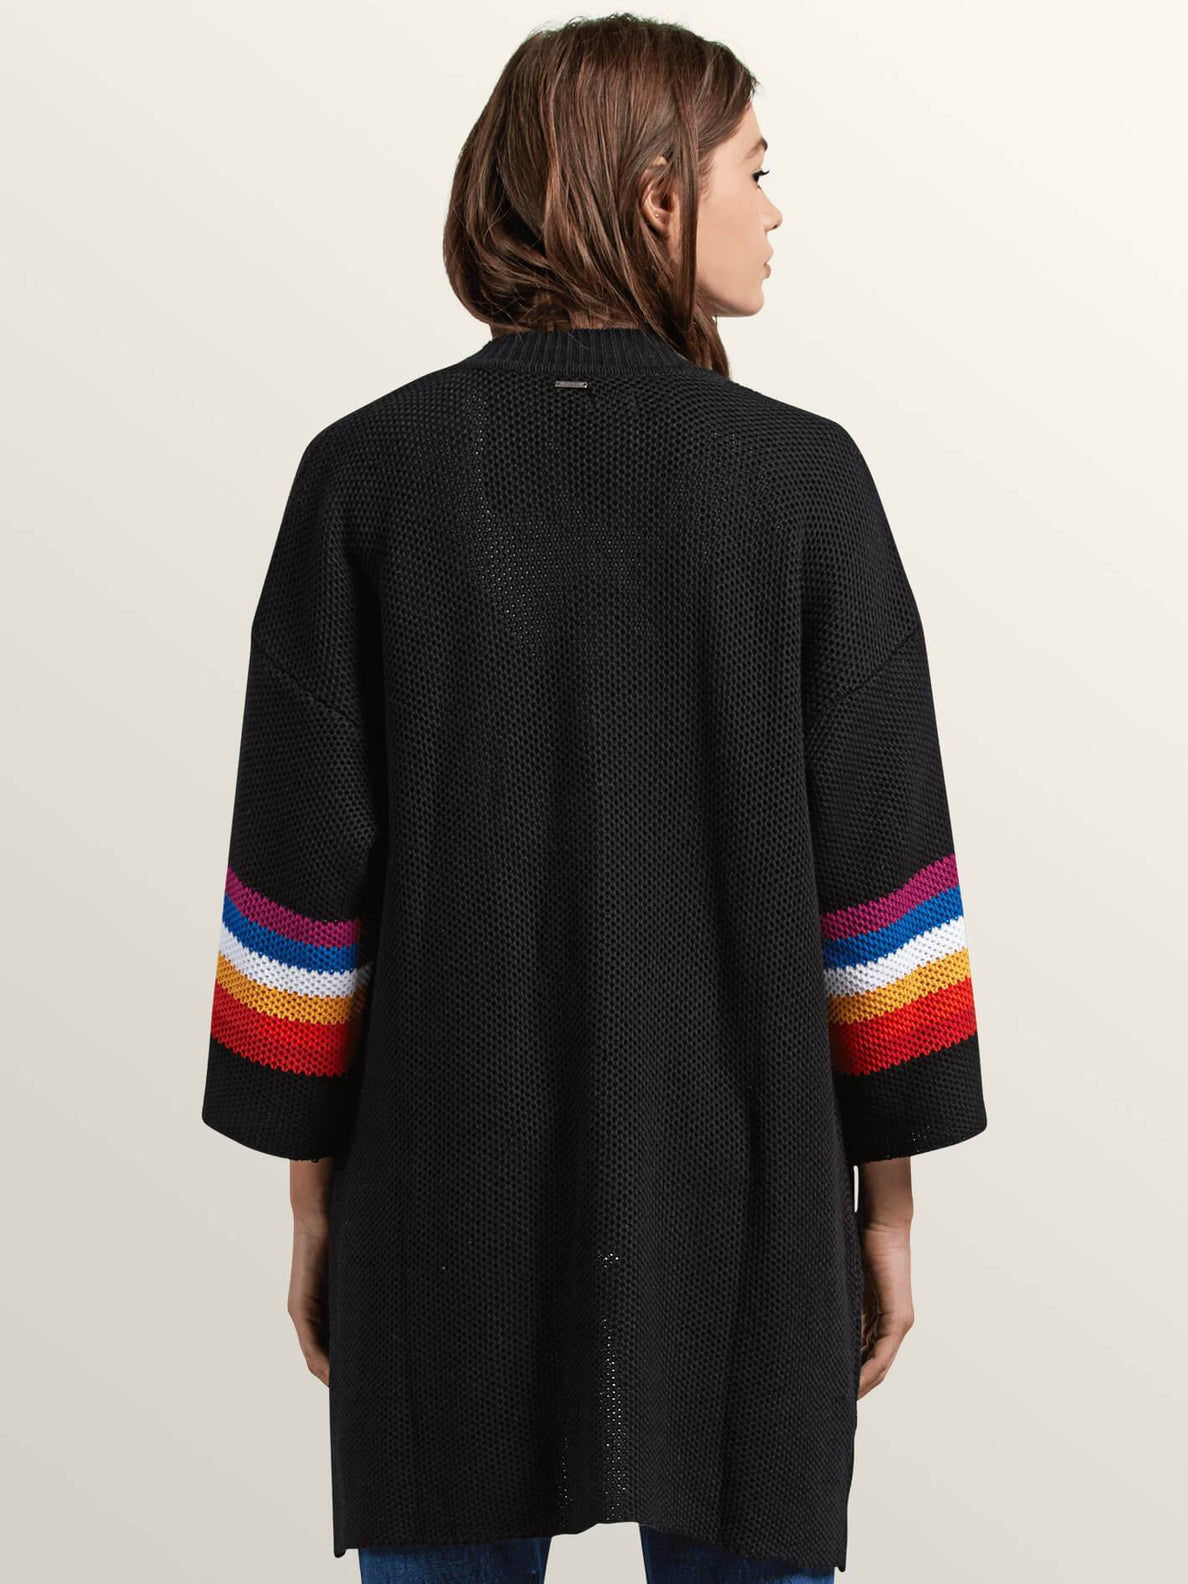 Bah Cardi Sweater In Black, Back View